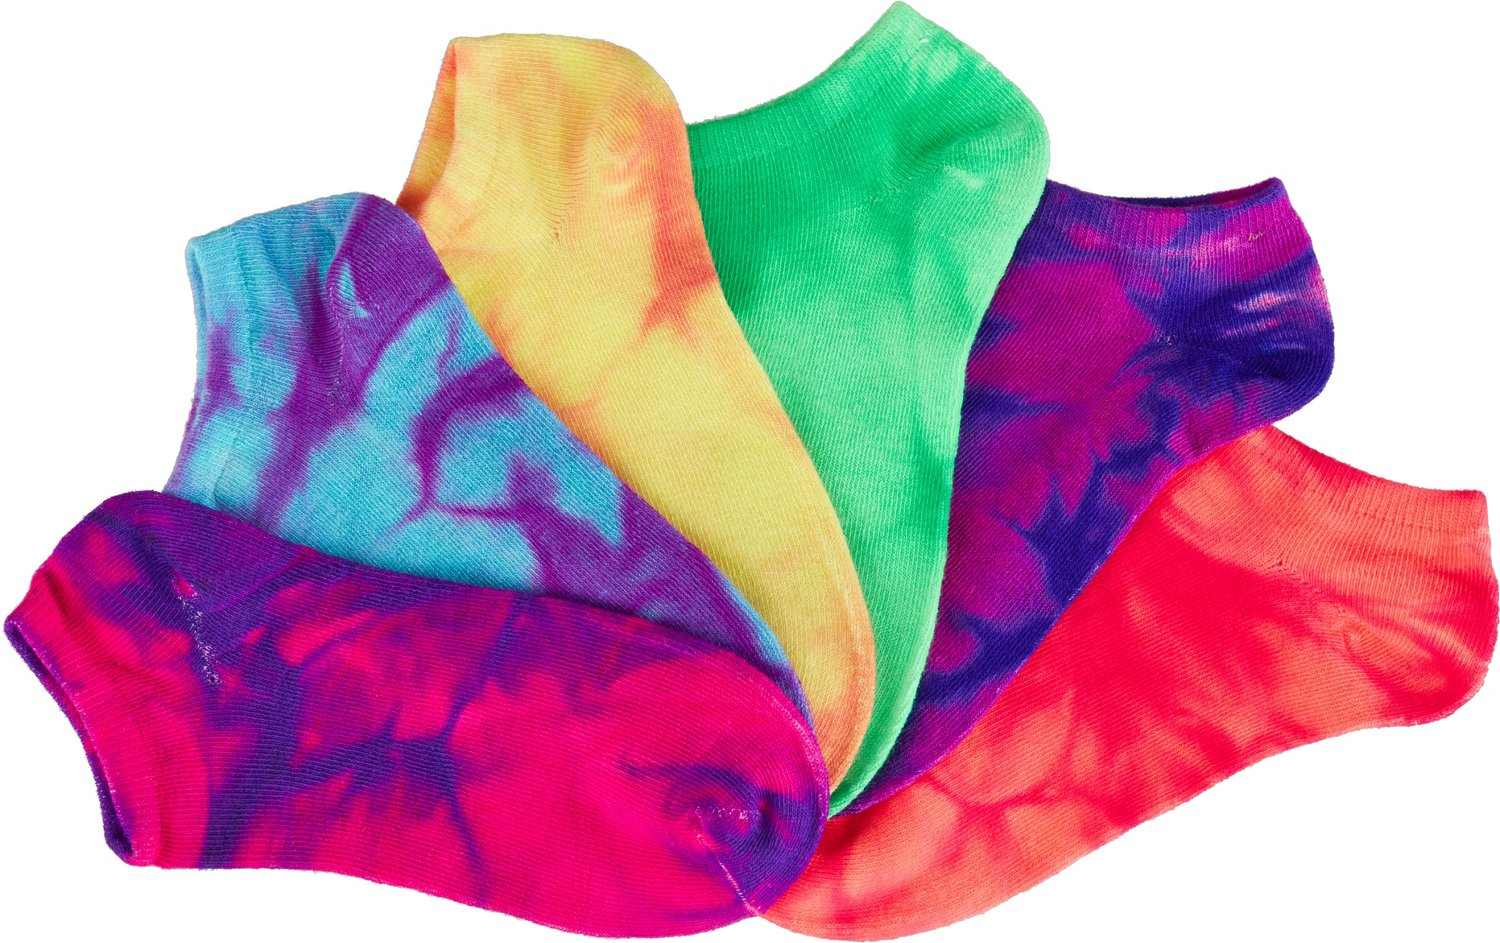 BCG Women's True Bright Tie-Dye Fashion Socks 6 Pack - view number 3